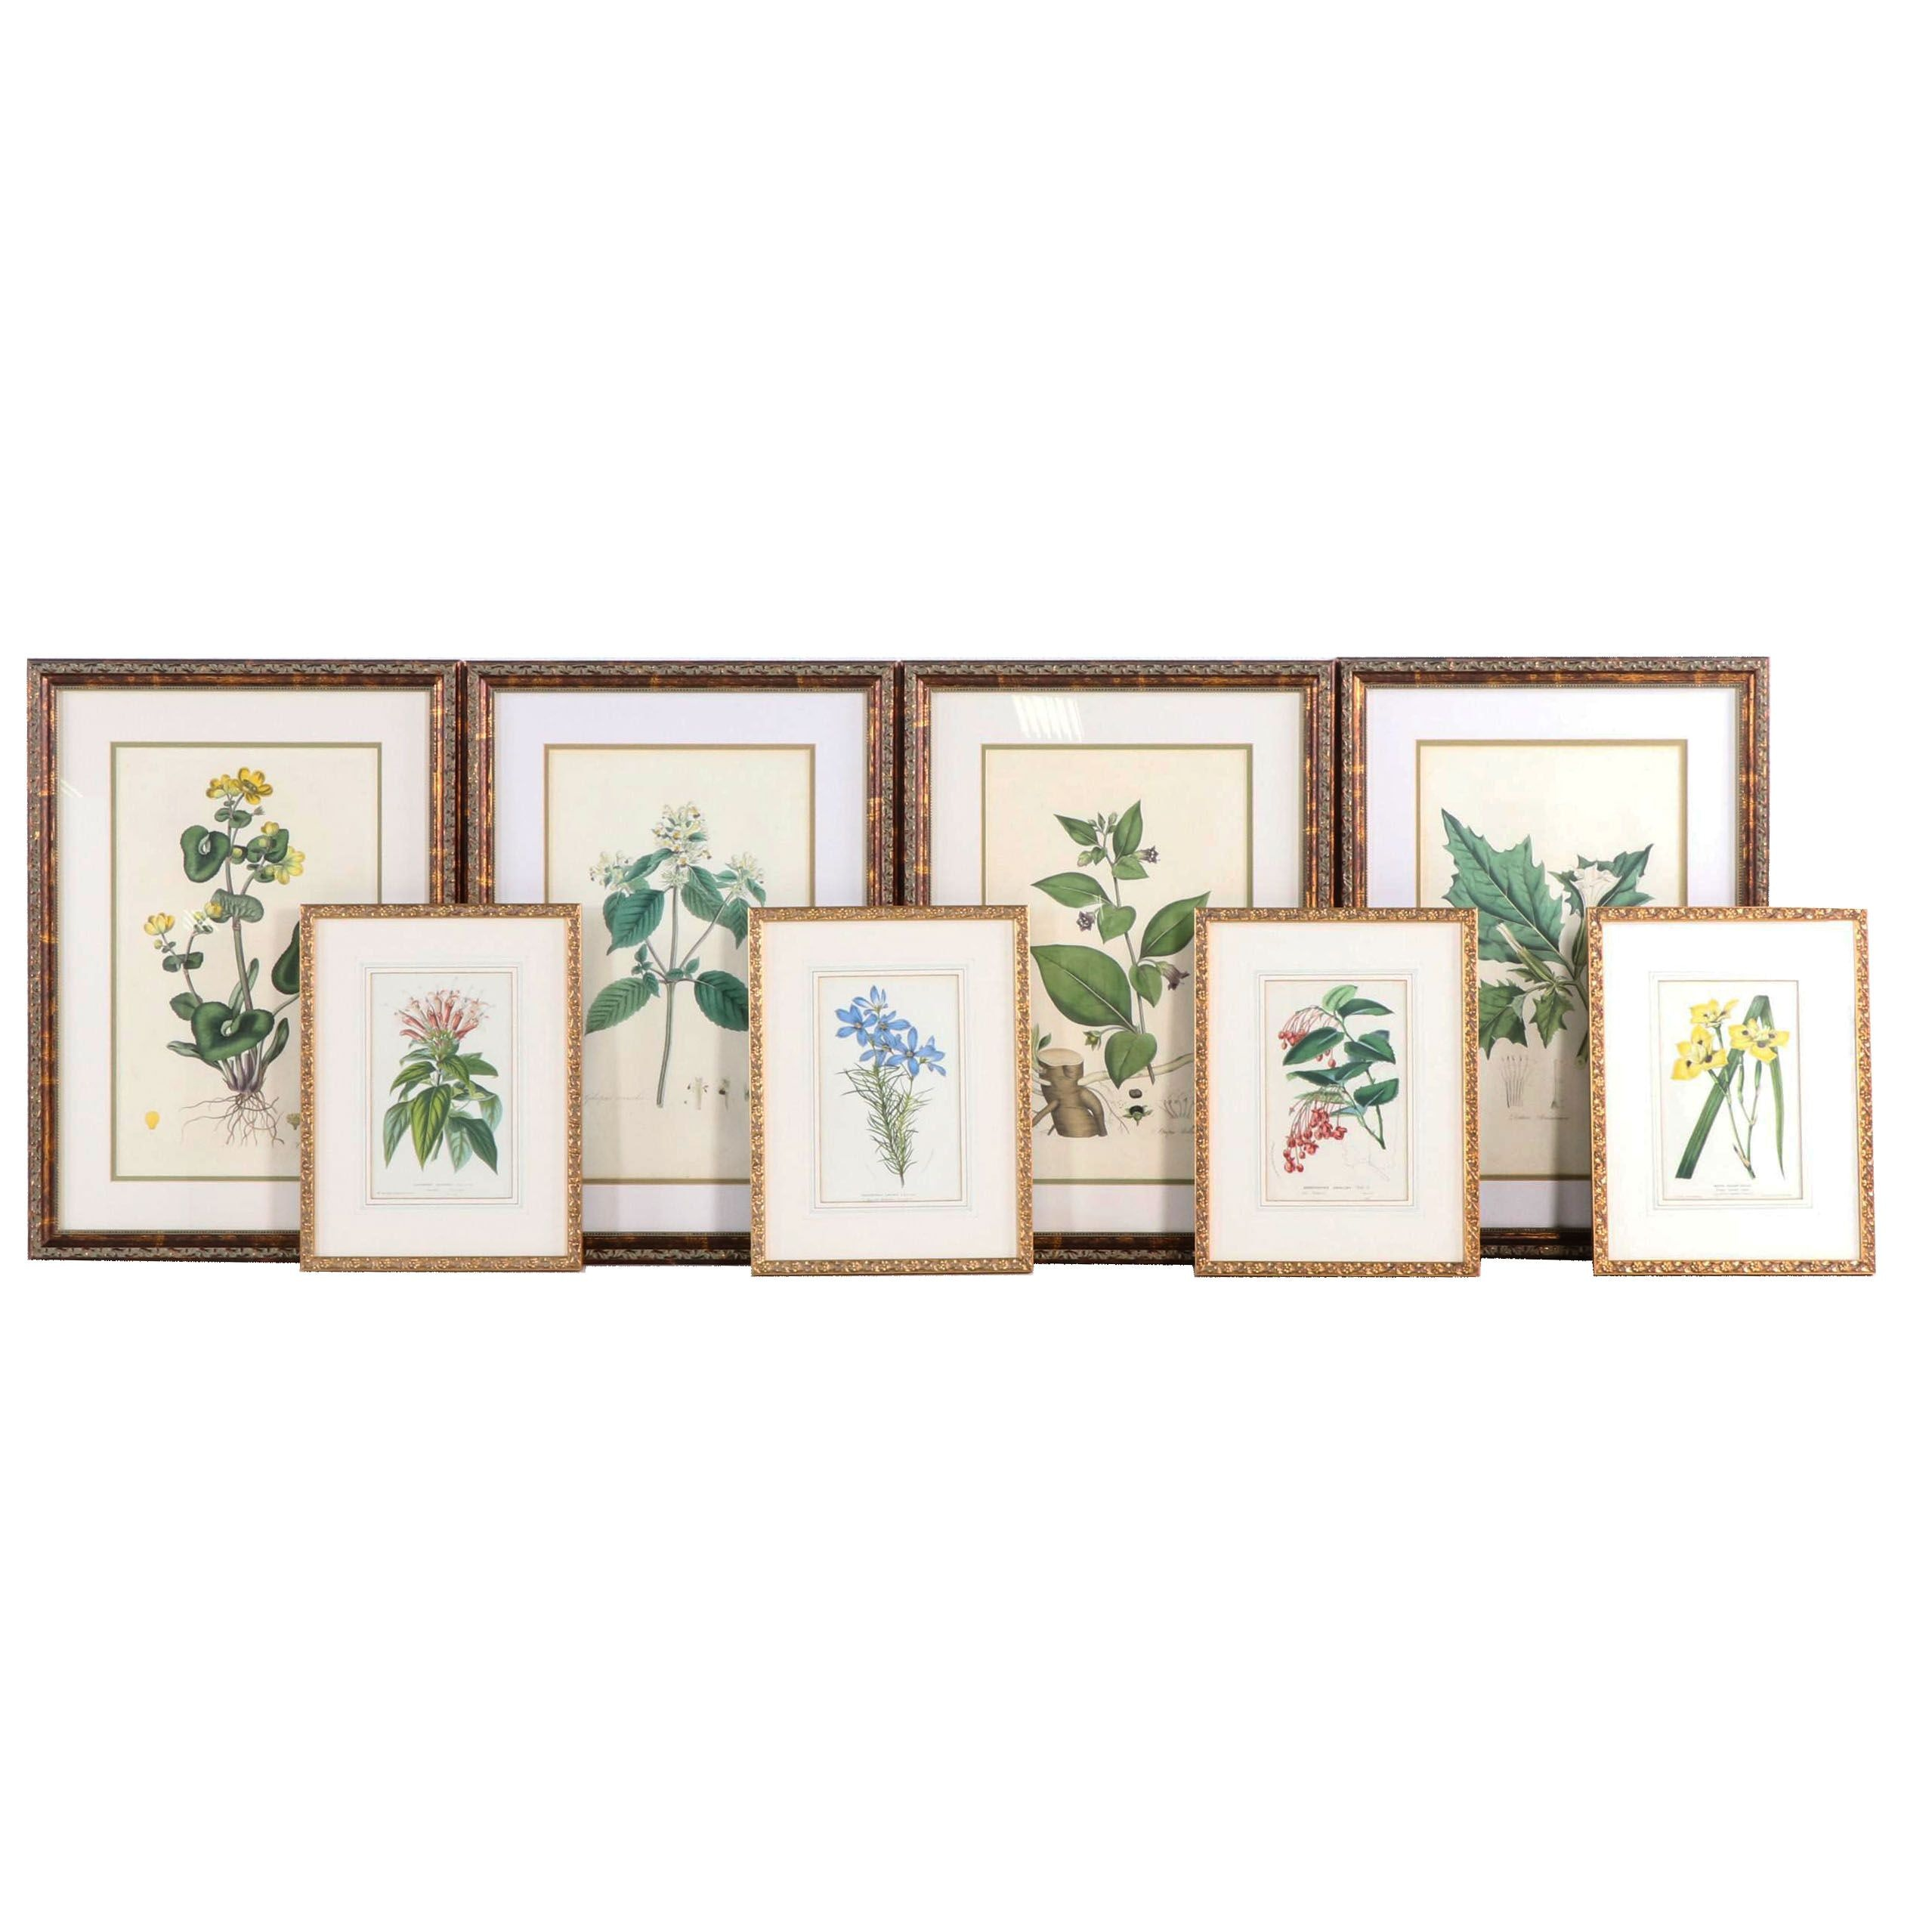 Botanical Hand-Colored Engravings and Color Lithographs